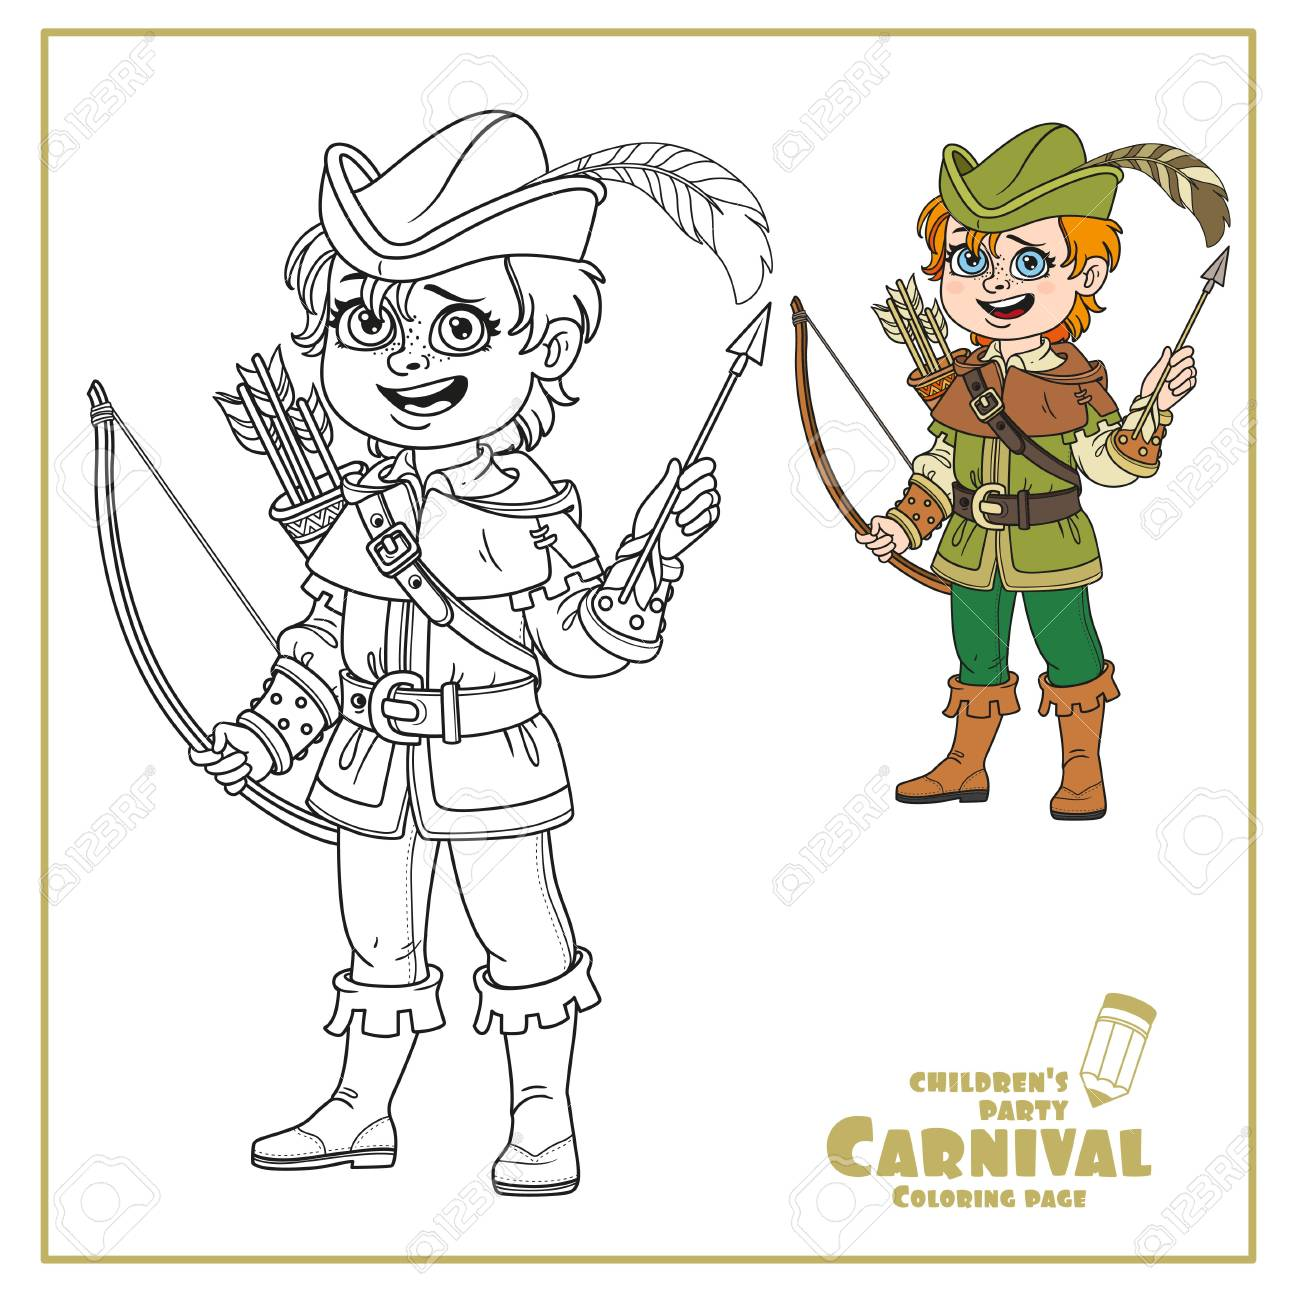 Disney's Robin Hood Coloring Pages | Disneyclips.com | 1300x1300